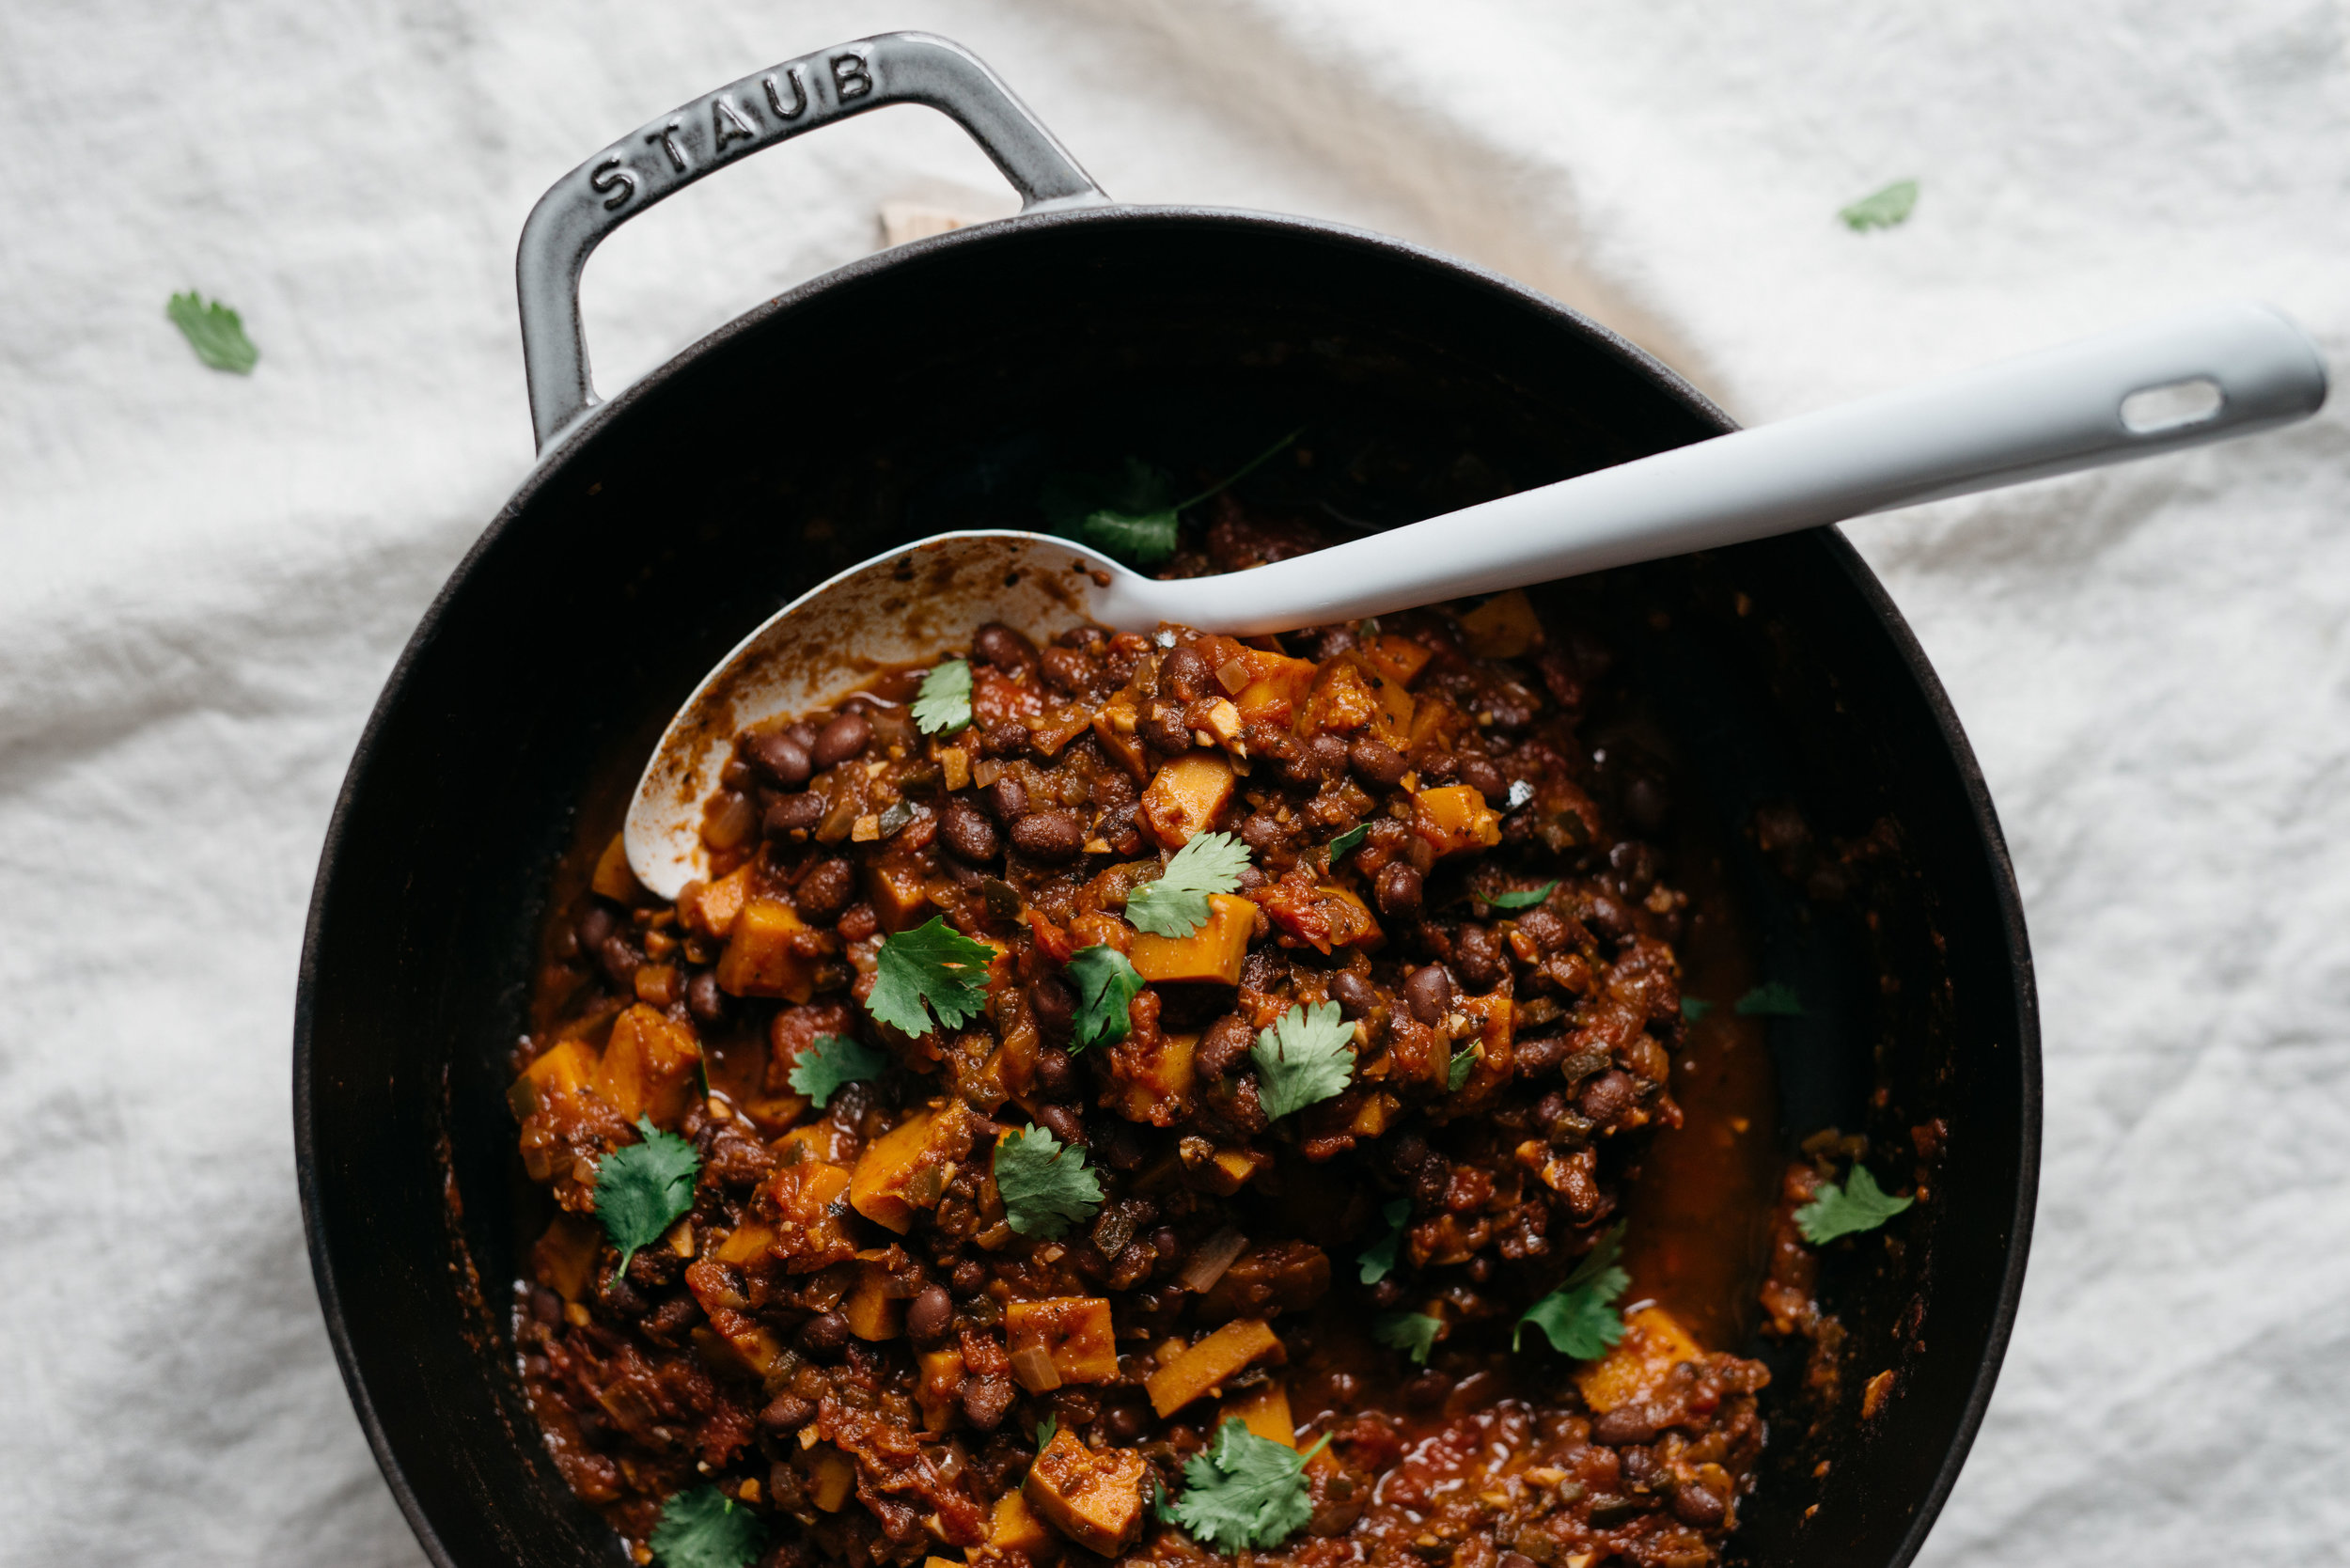 Butternut Squash Chili w/ Cilantro Yogurt | dolly and oatmeal